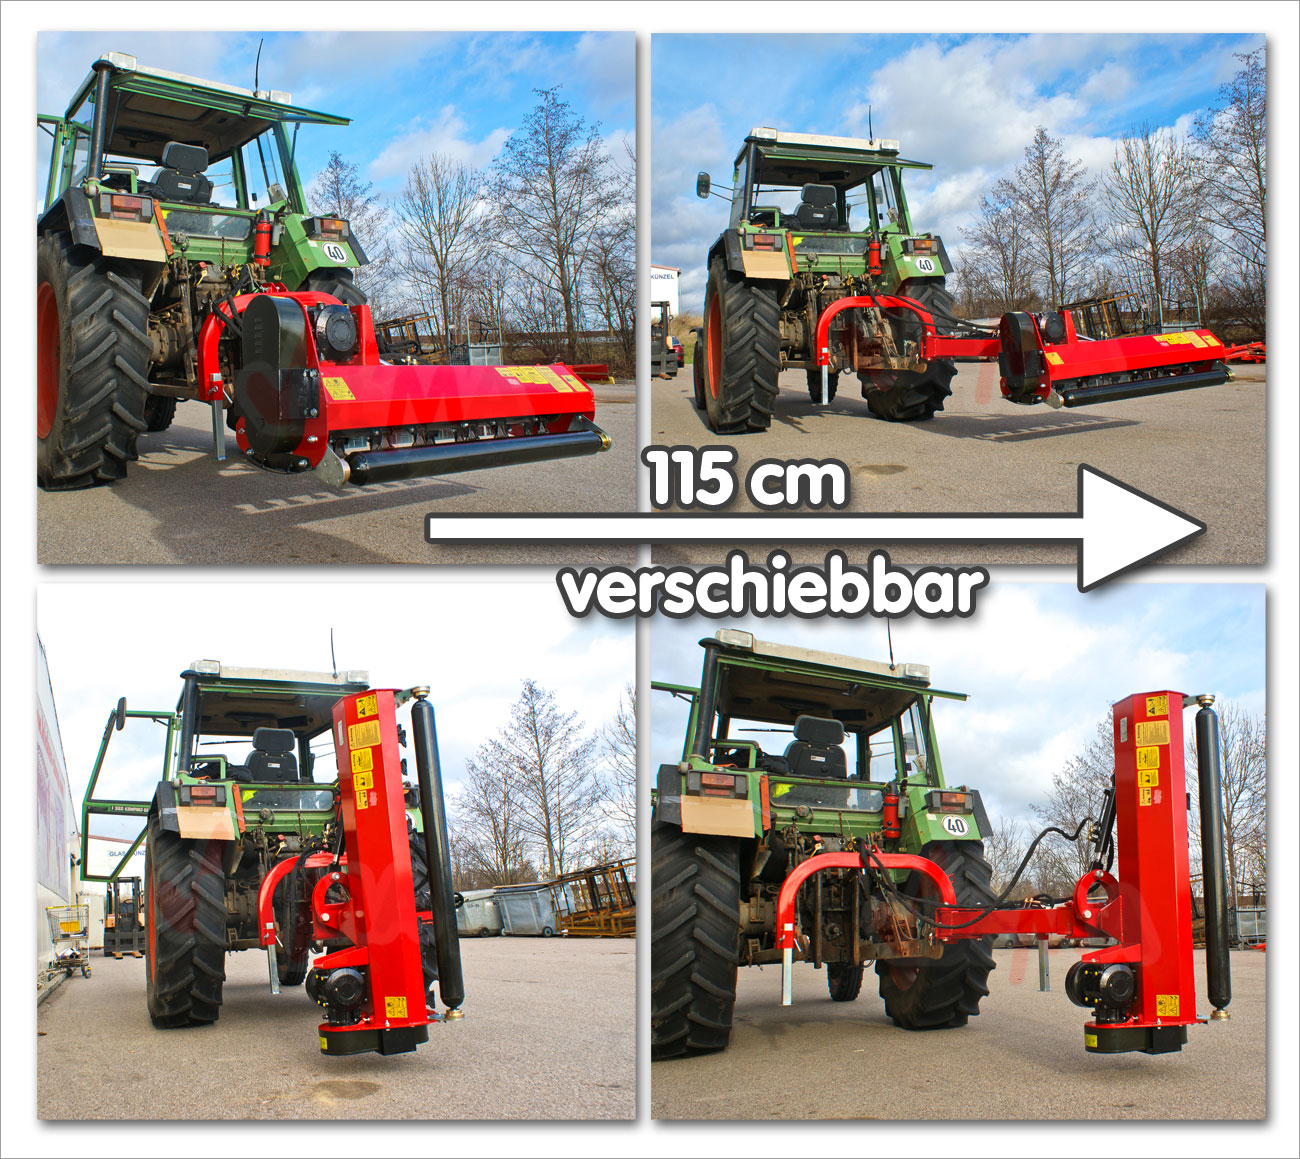 traktor m hwerk slm 145s mulcher schlegelmulcher versatz heckm hwerk m her ebay. Black Bedroom Furniture Sets. Home Design Ideas